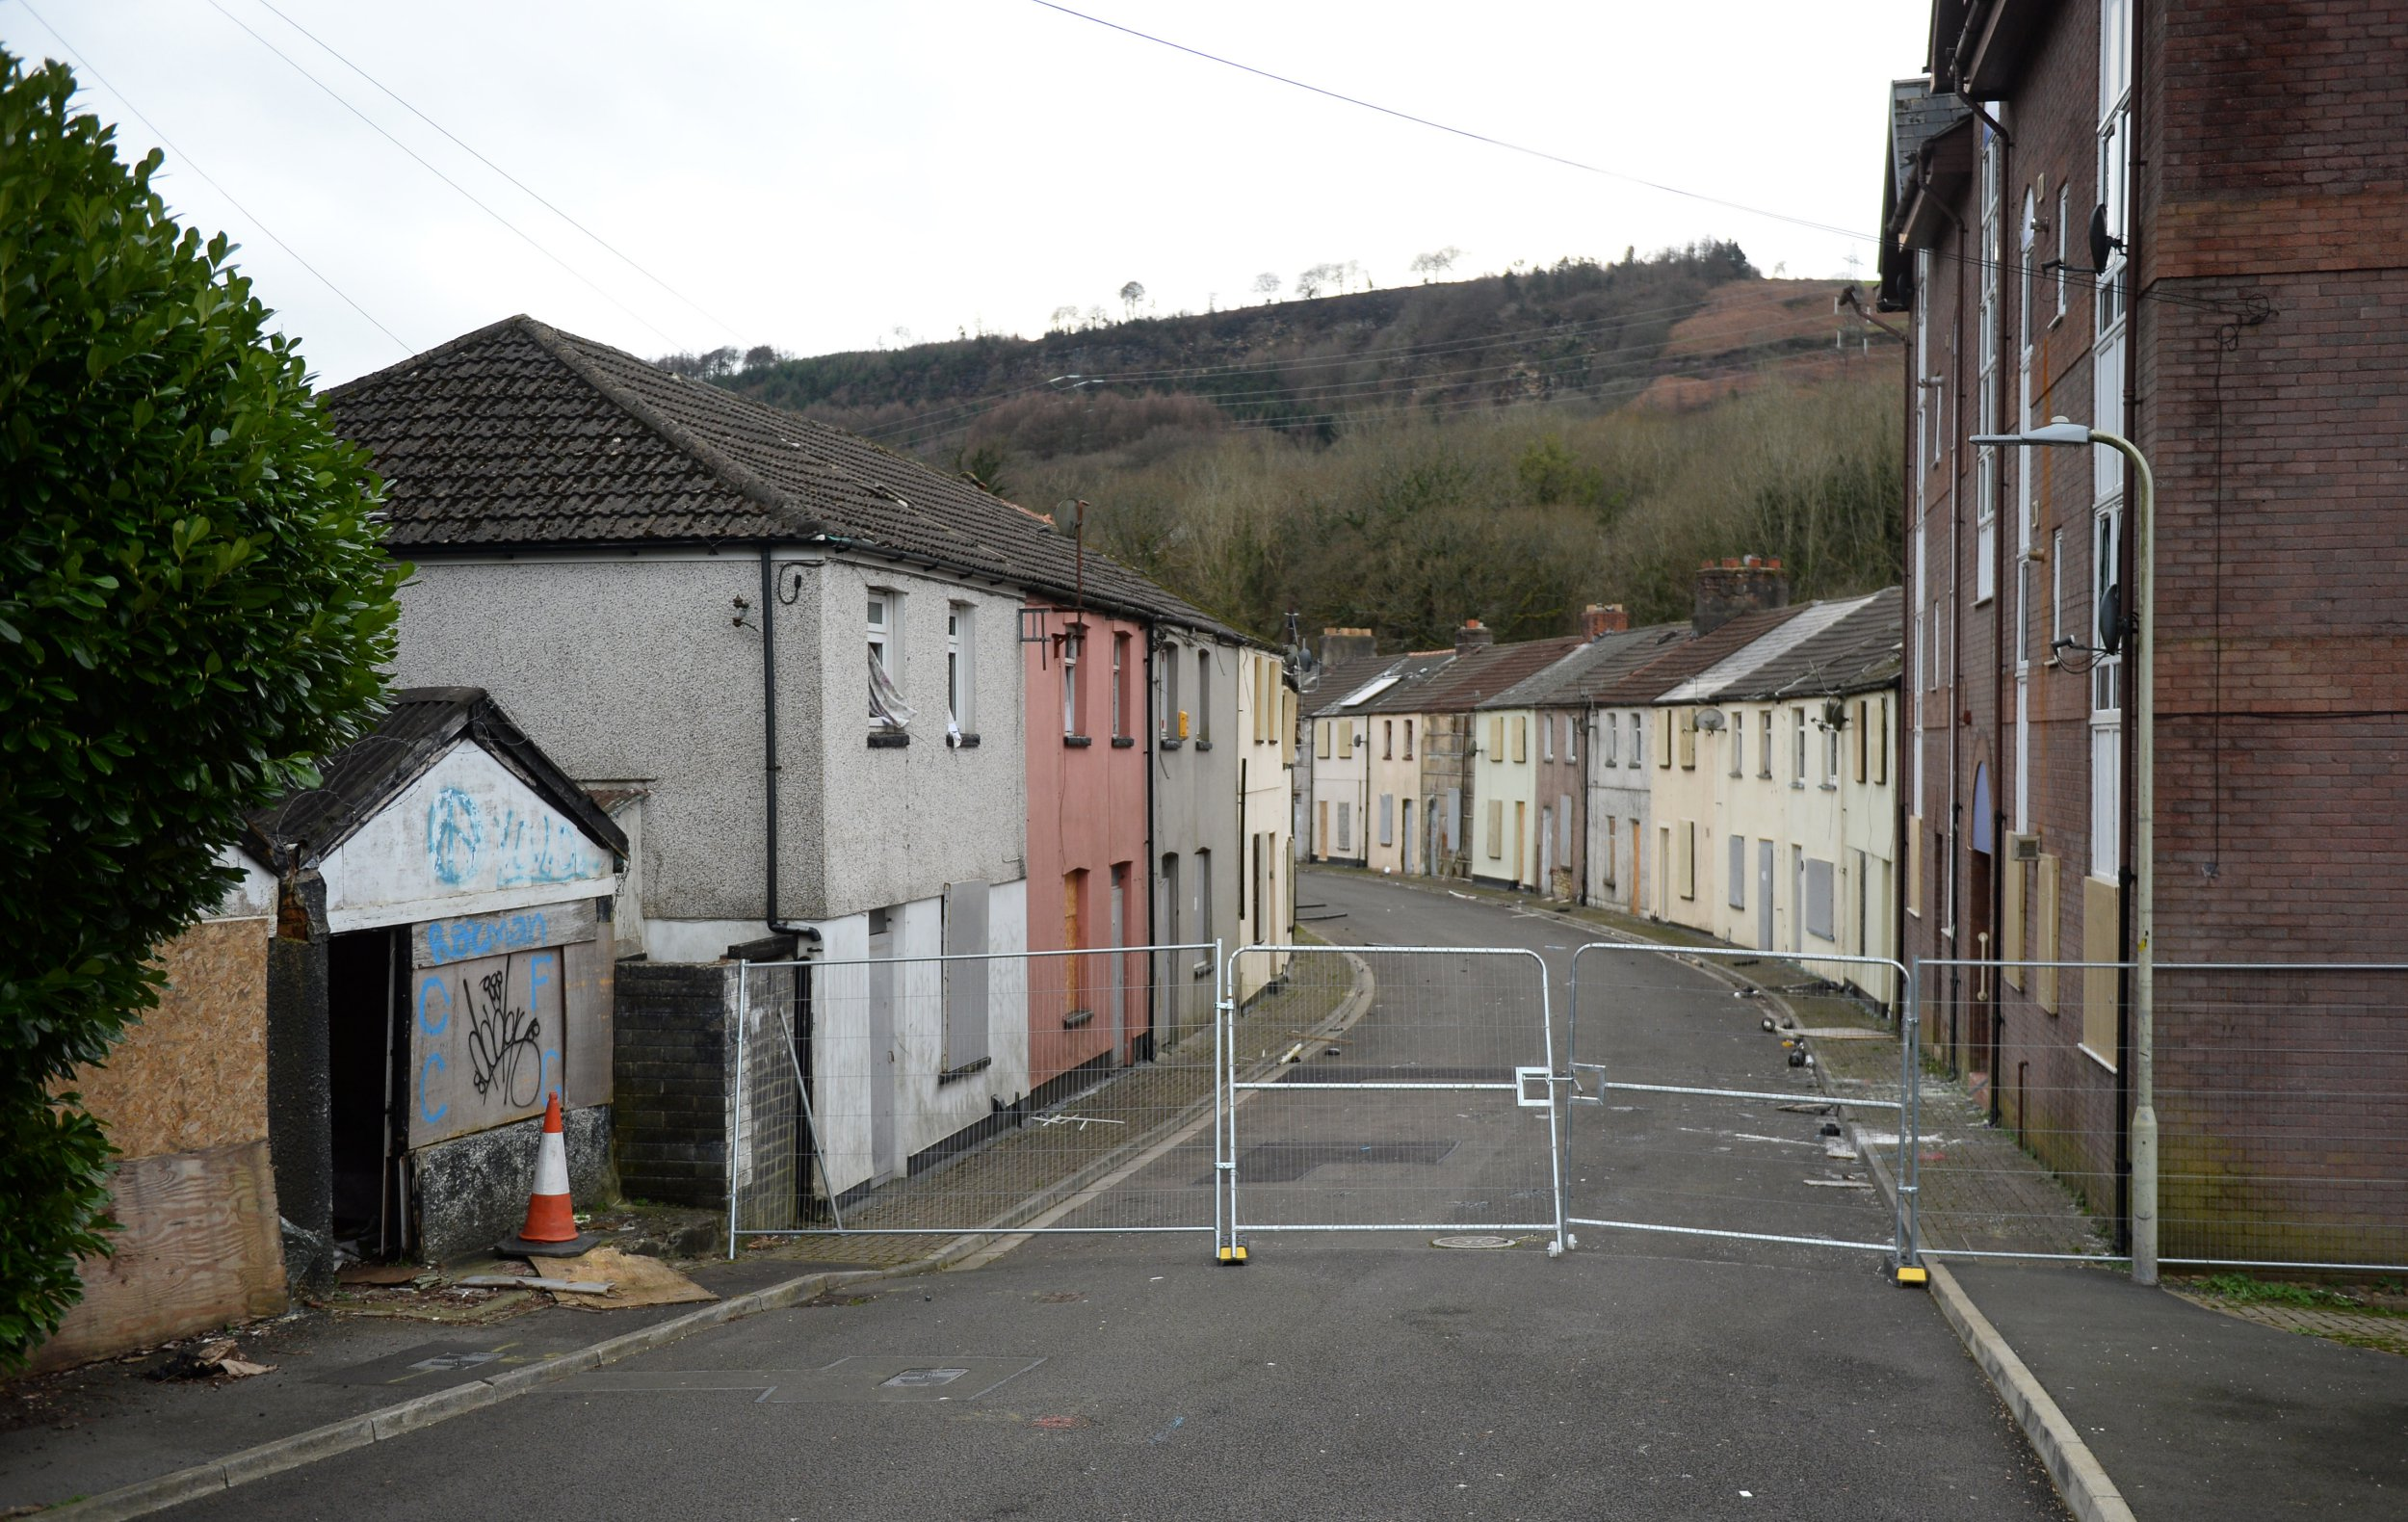 Two streets in a tiny Welsh village have been turned into a ghost town - after homeowners were forced to move out. More than 100 homes in the rows of traditional terraced houses stand eerily empty yards from a flowing river. And Taff Street in Merthyr Vale, South Wales, is now deserted after being repeatedly flooded by the river which gave it its name. ?? WALES NEWS SERVICE